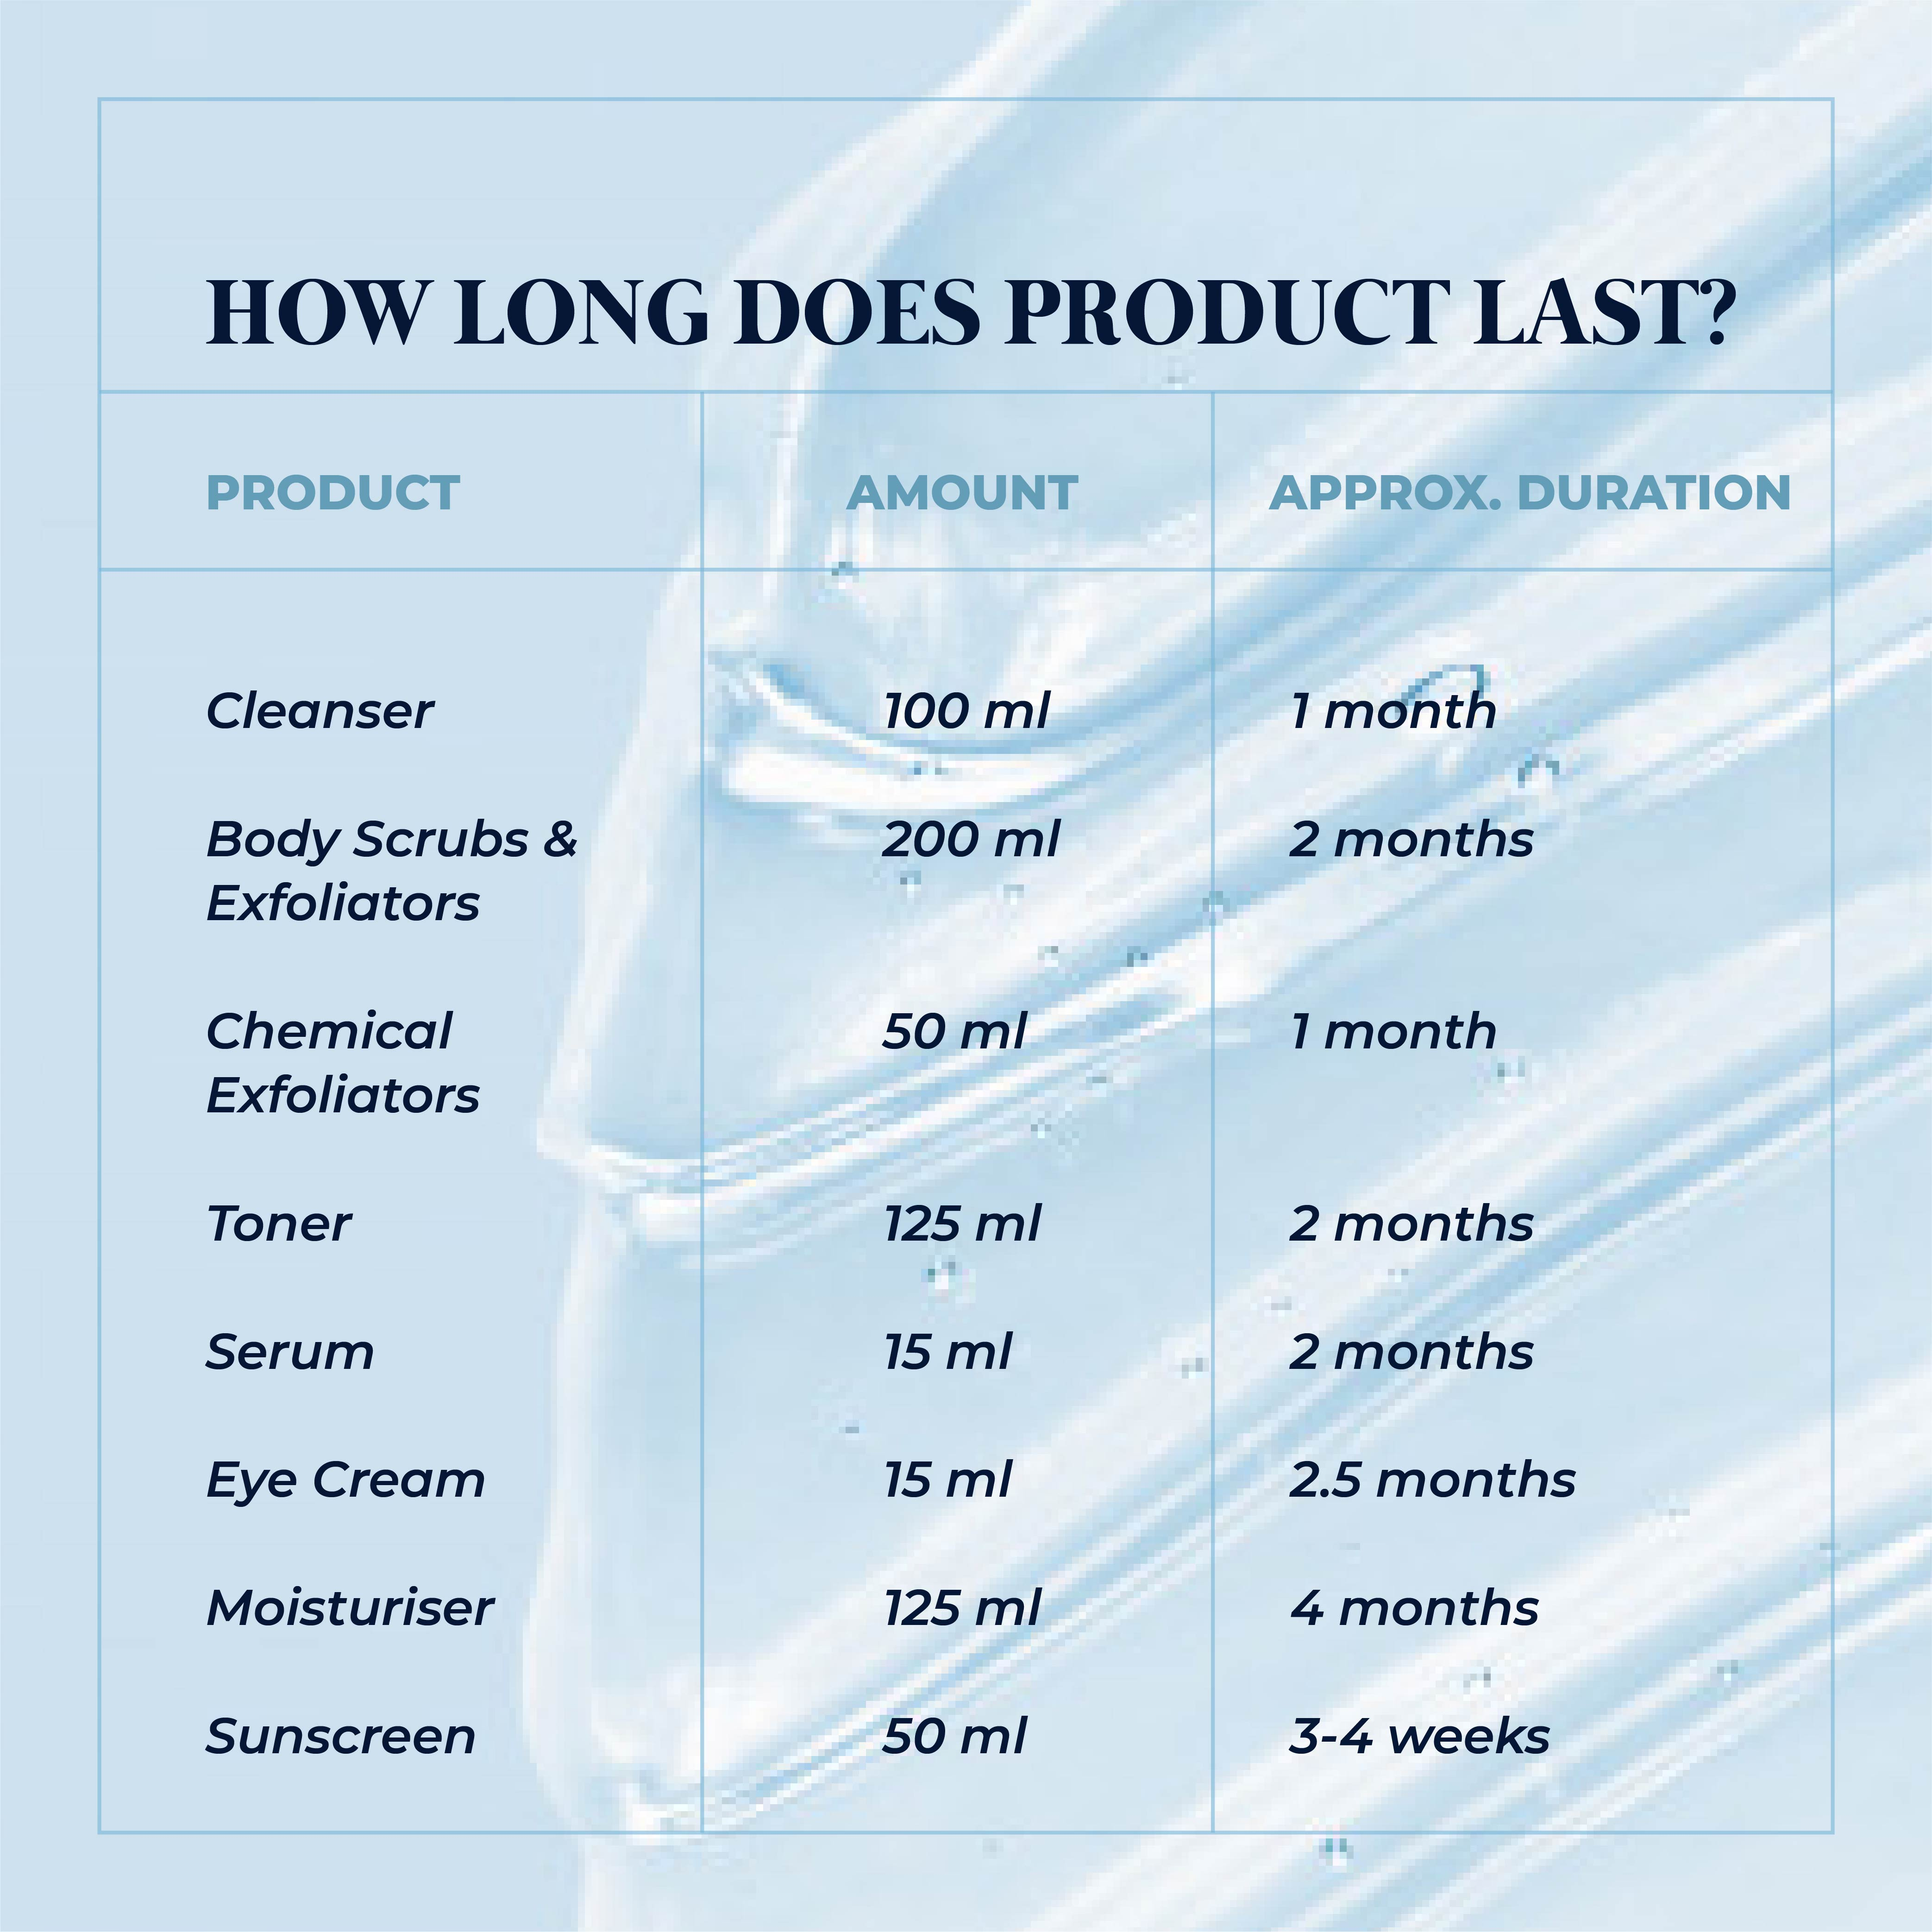 This is an image of how long does a product last